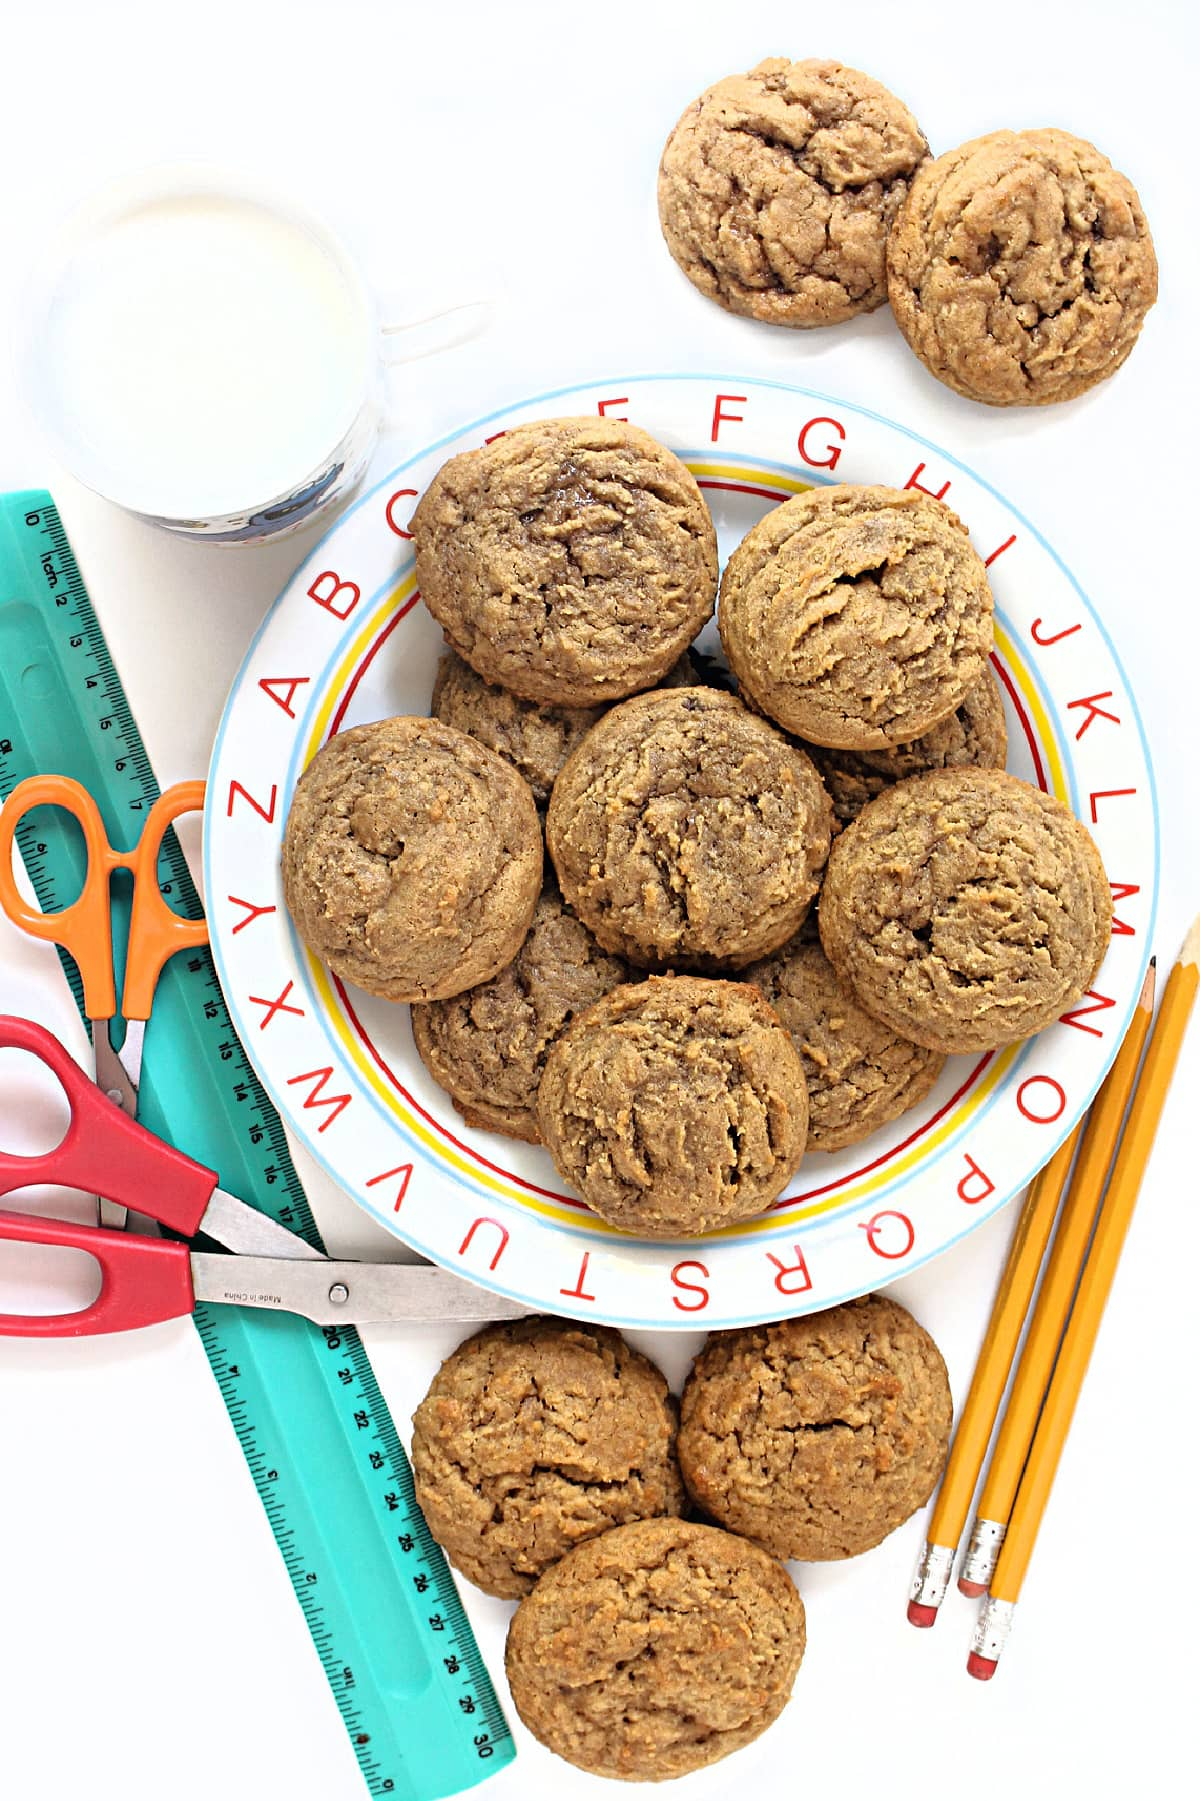 Golden brown peanut butter and jelly cookies on a plate with the alphabet around the rim.